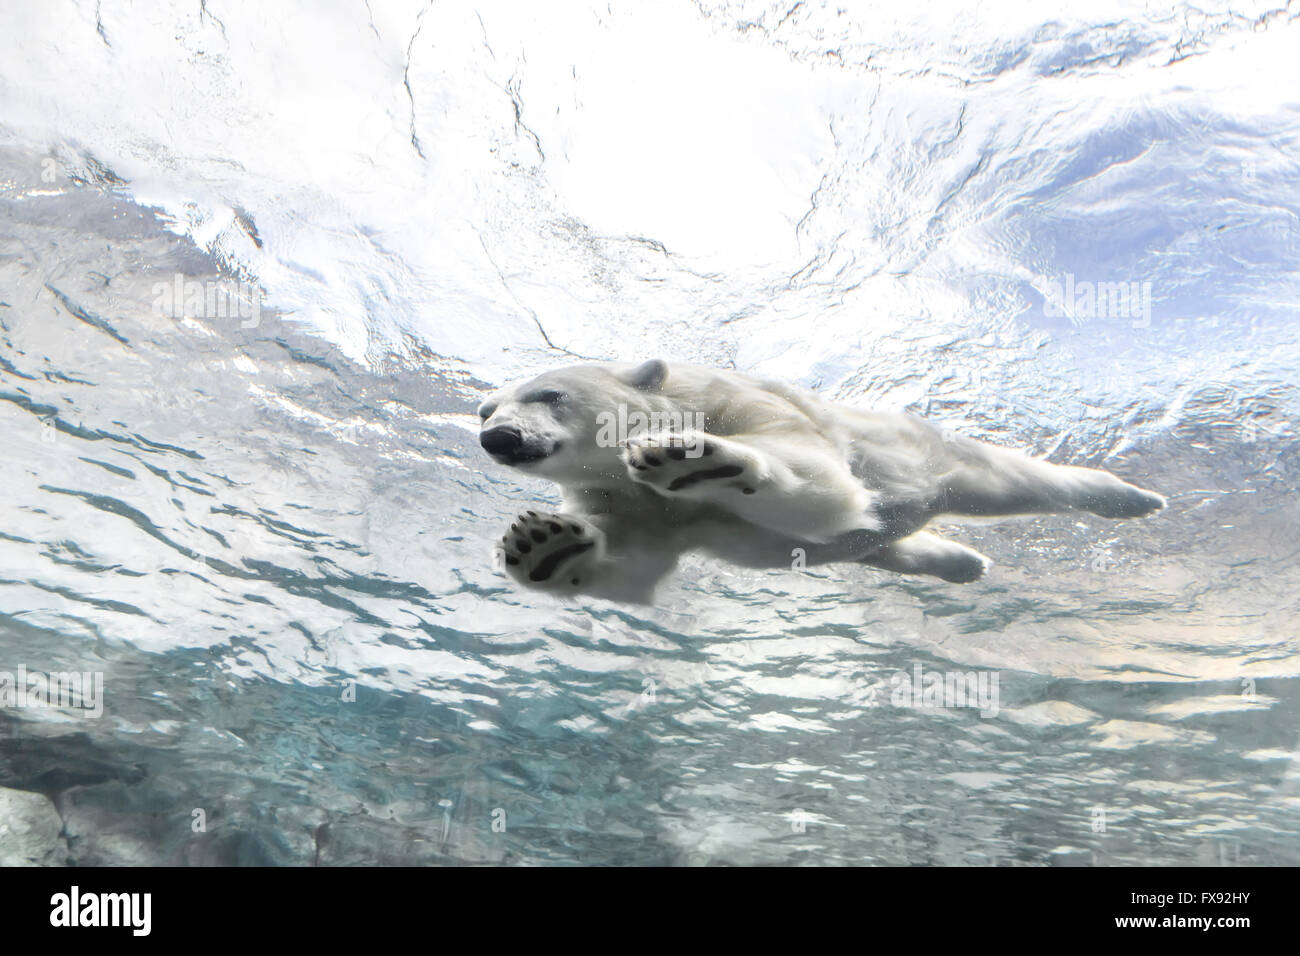 Polar Bear swimming underwater at the Journey to Churchill, Assiniboine Park Zoo, Winnipeg, Manitoba, Canada. - Stock Image